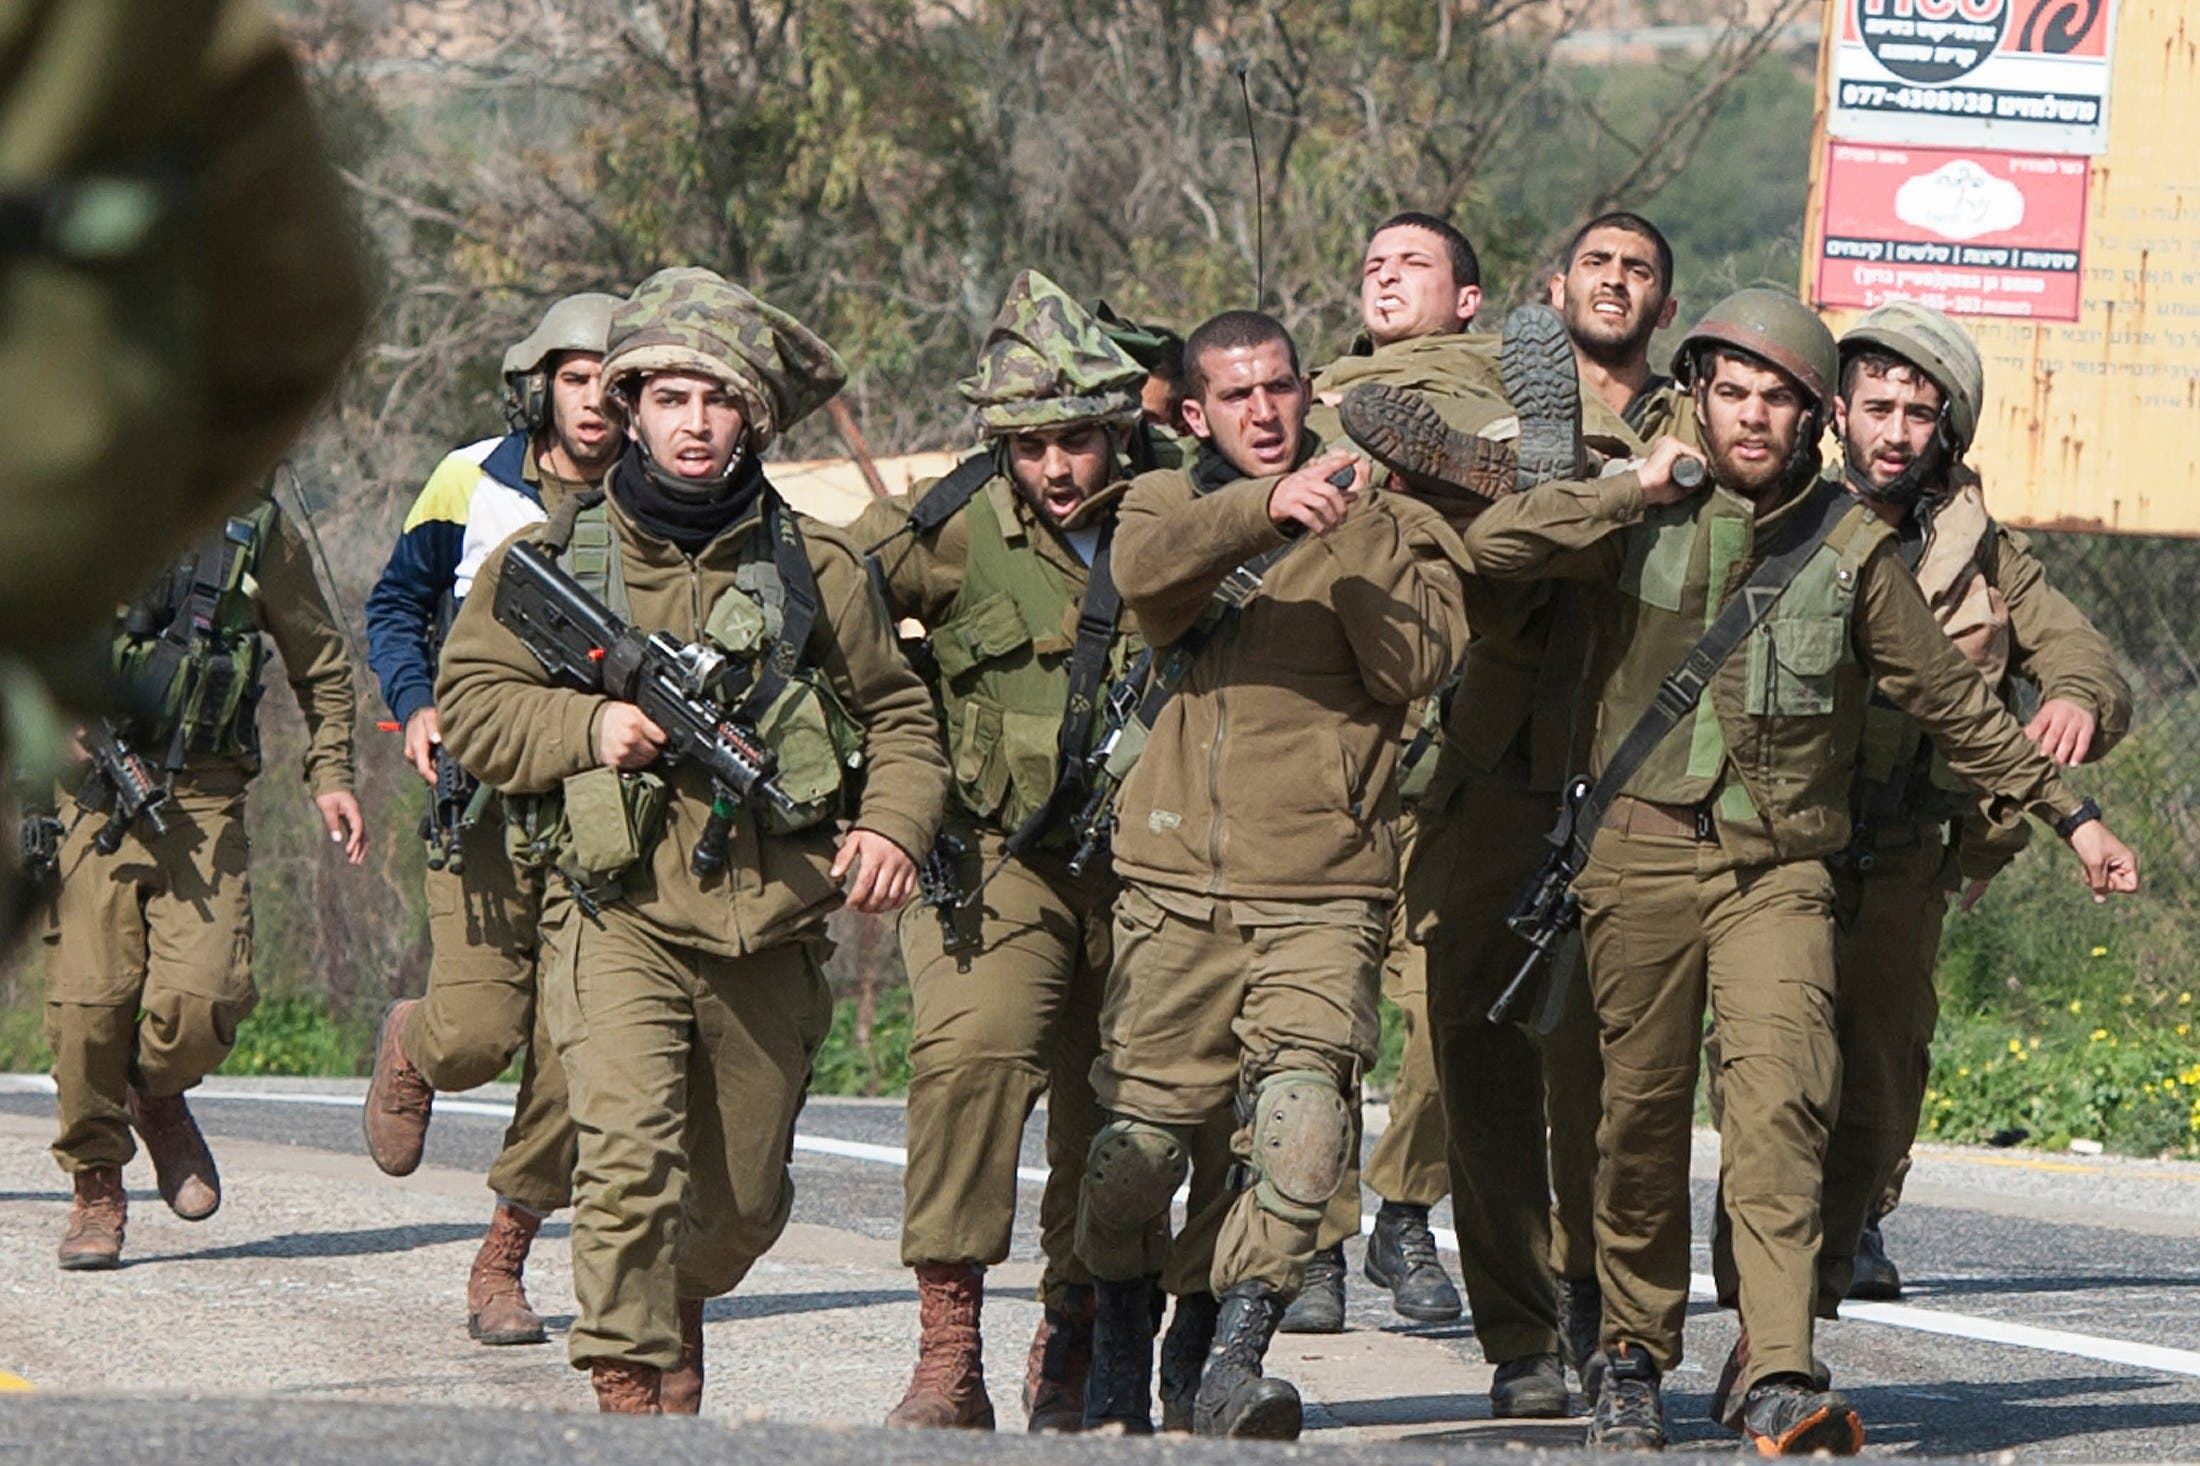 Israeli soldiers carry a wounded comrade on a stretcher near Israel's border with Lebanon January 28, 2015. The threat of a full-blown conflict between Israel and Hezbollah increased on Wednesday after the Lebanese militant group fired a missile at an Israeli army vehicle along the frontier and wounded seven soldiers, the biggest escalation since a 2006 war. REUTERS